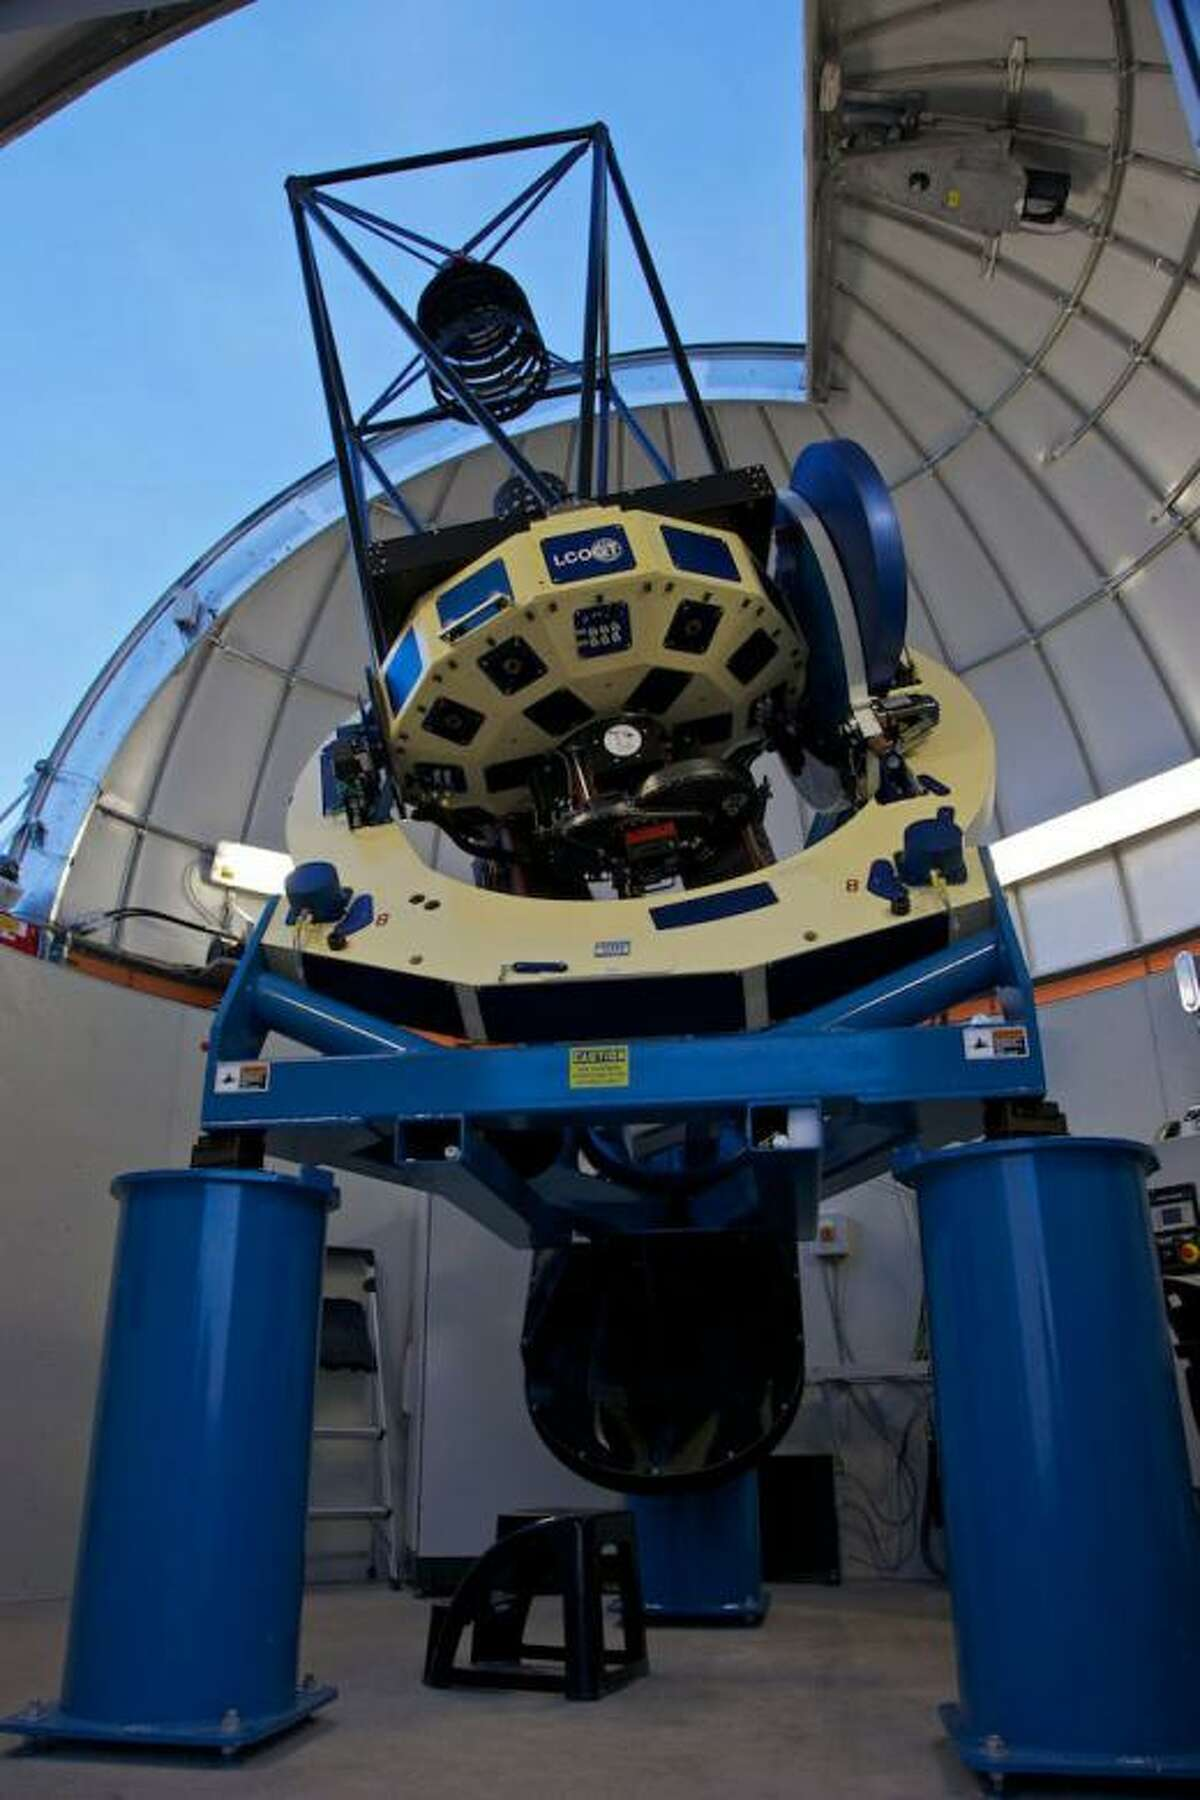 Las Cumbres Observatory Global Telescope Network will see first light at McDonald Observatory.